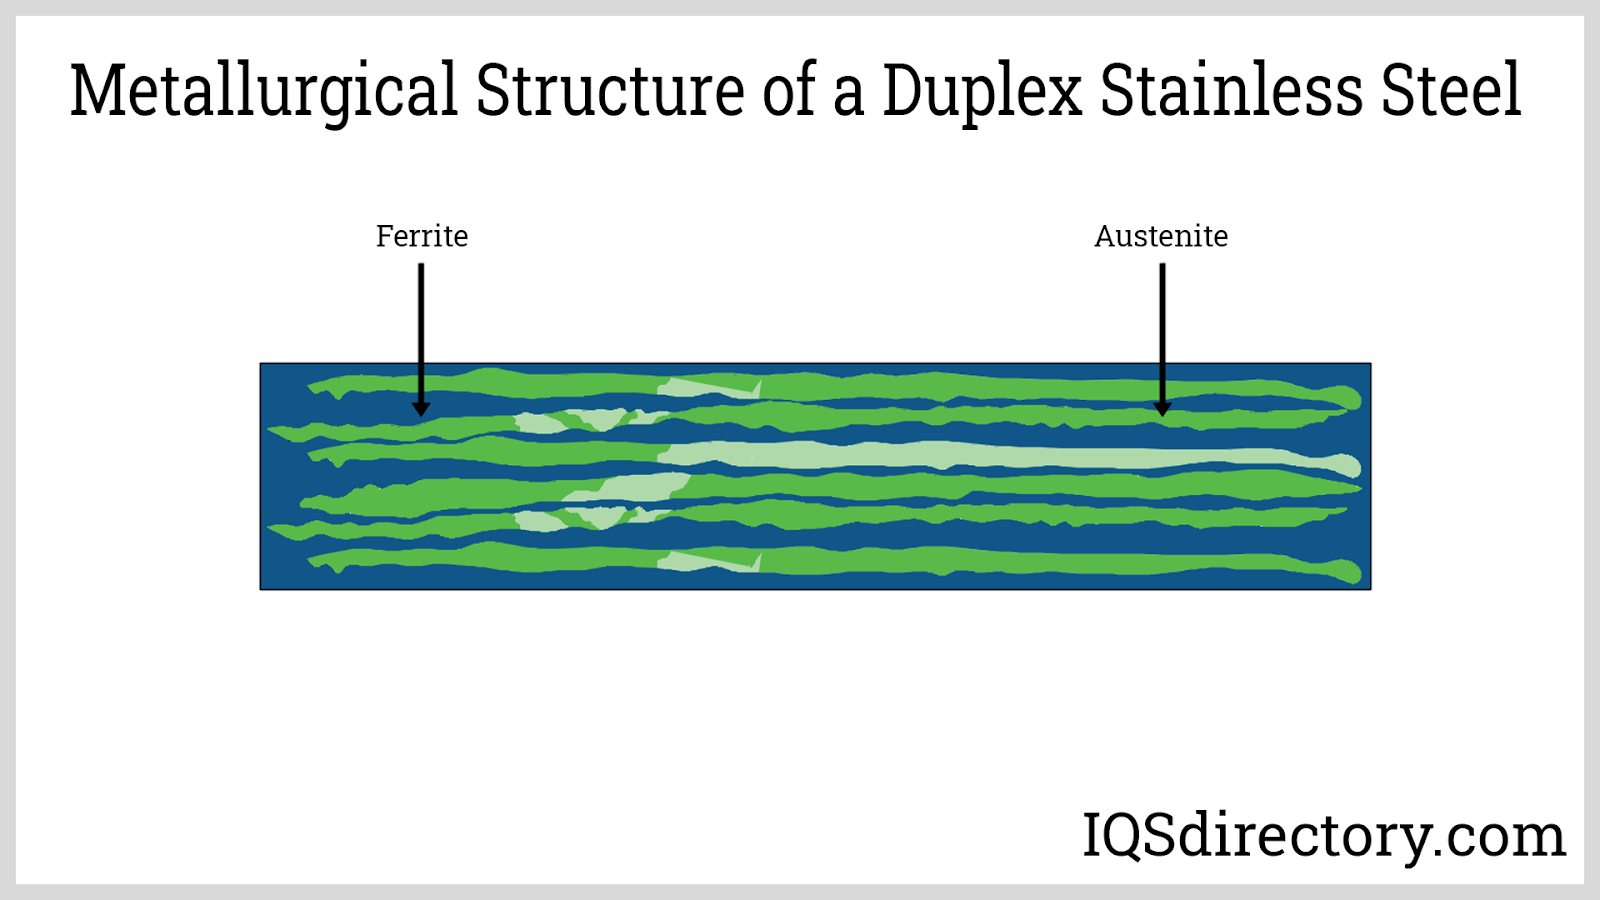 Metallurgical Structure of a Duplex Stainless Steel